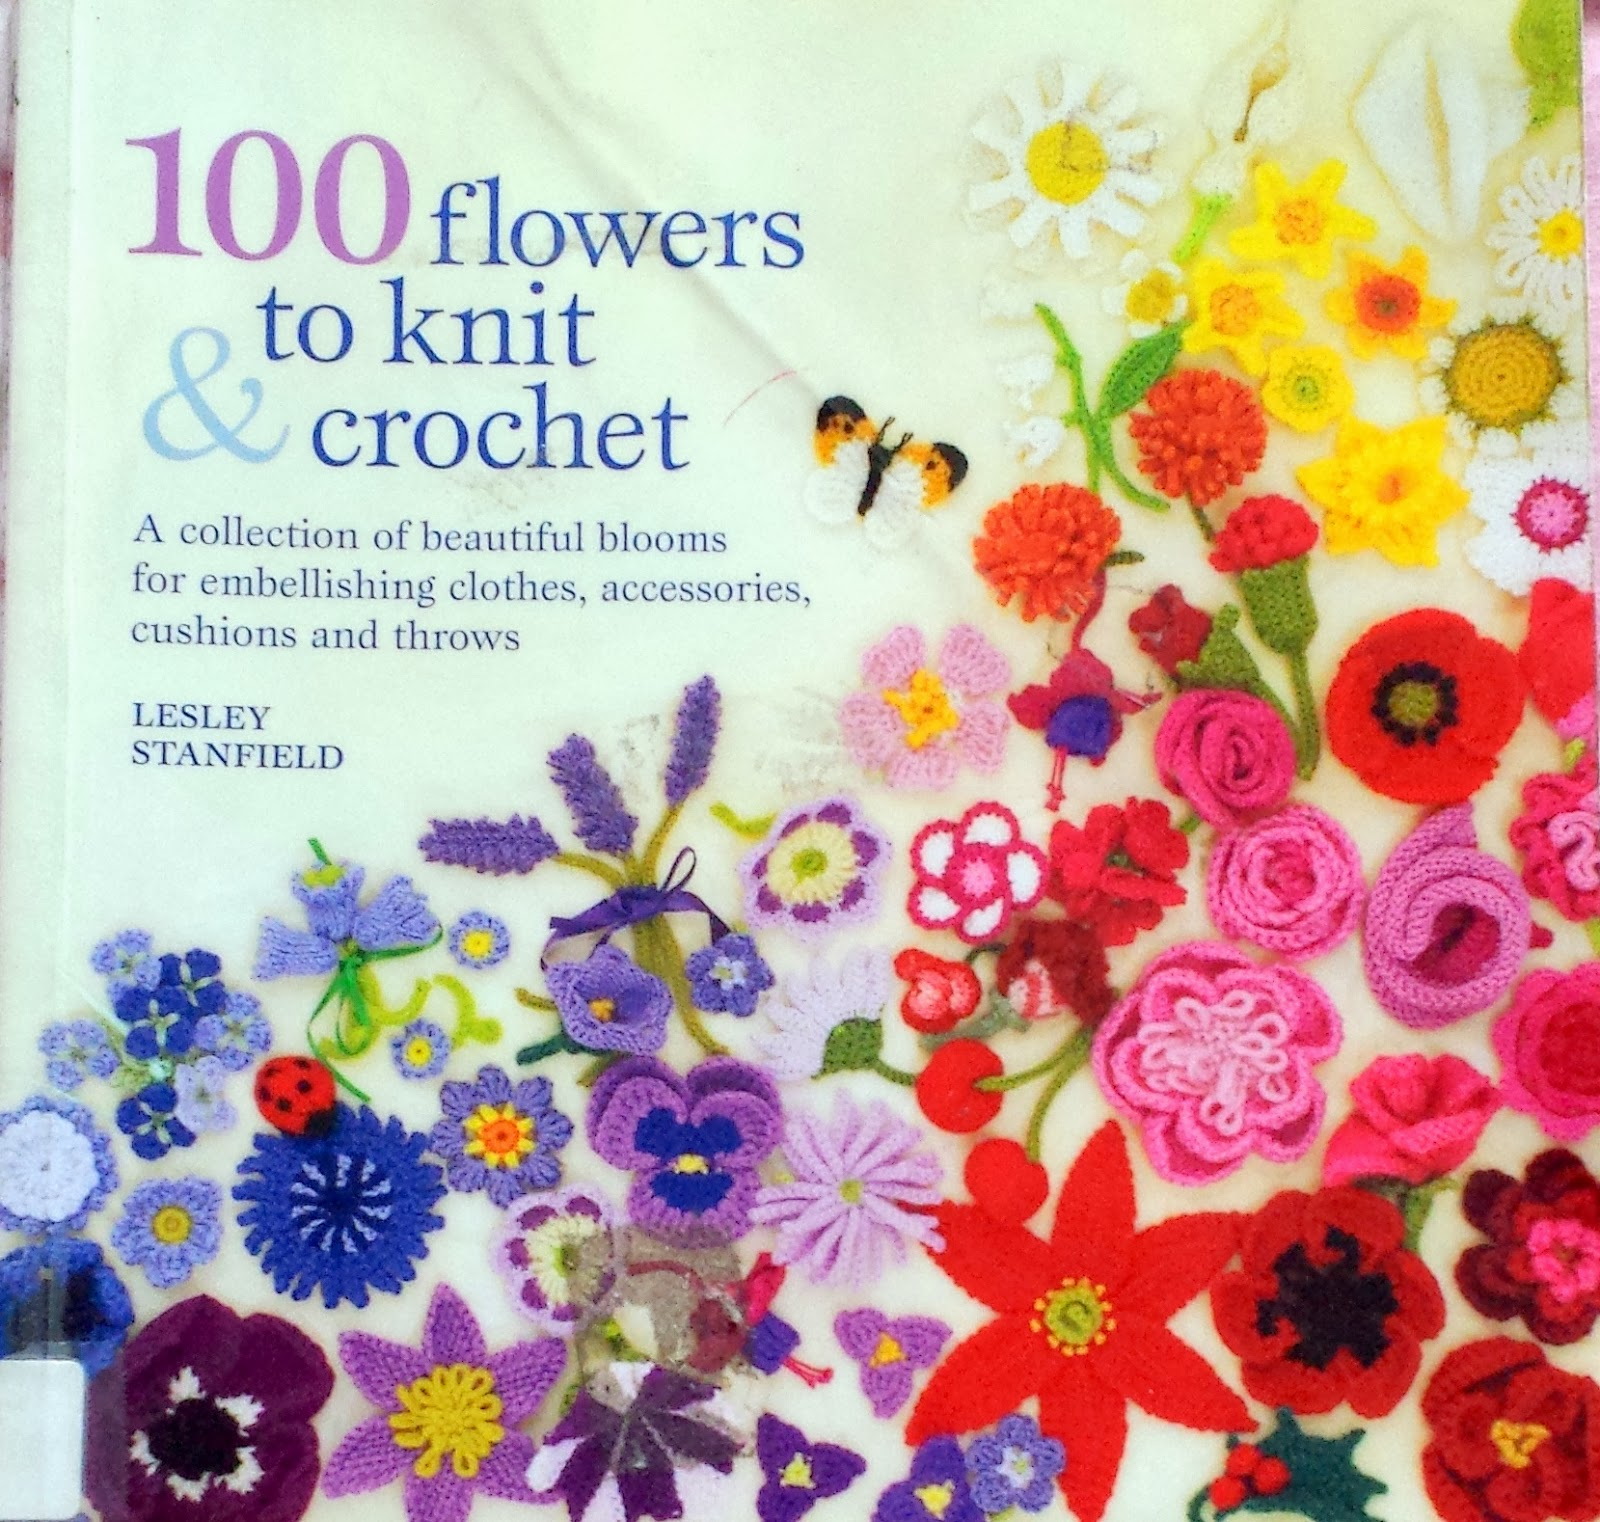 Knitting And Crochet Books : Knitting And Crochet Books From The Library